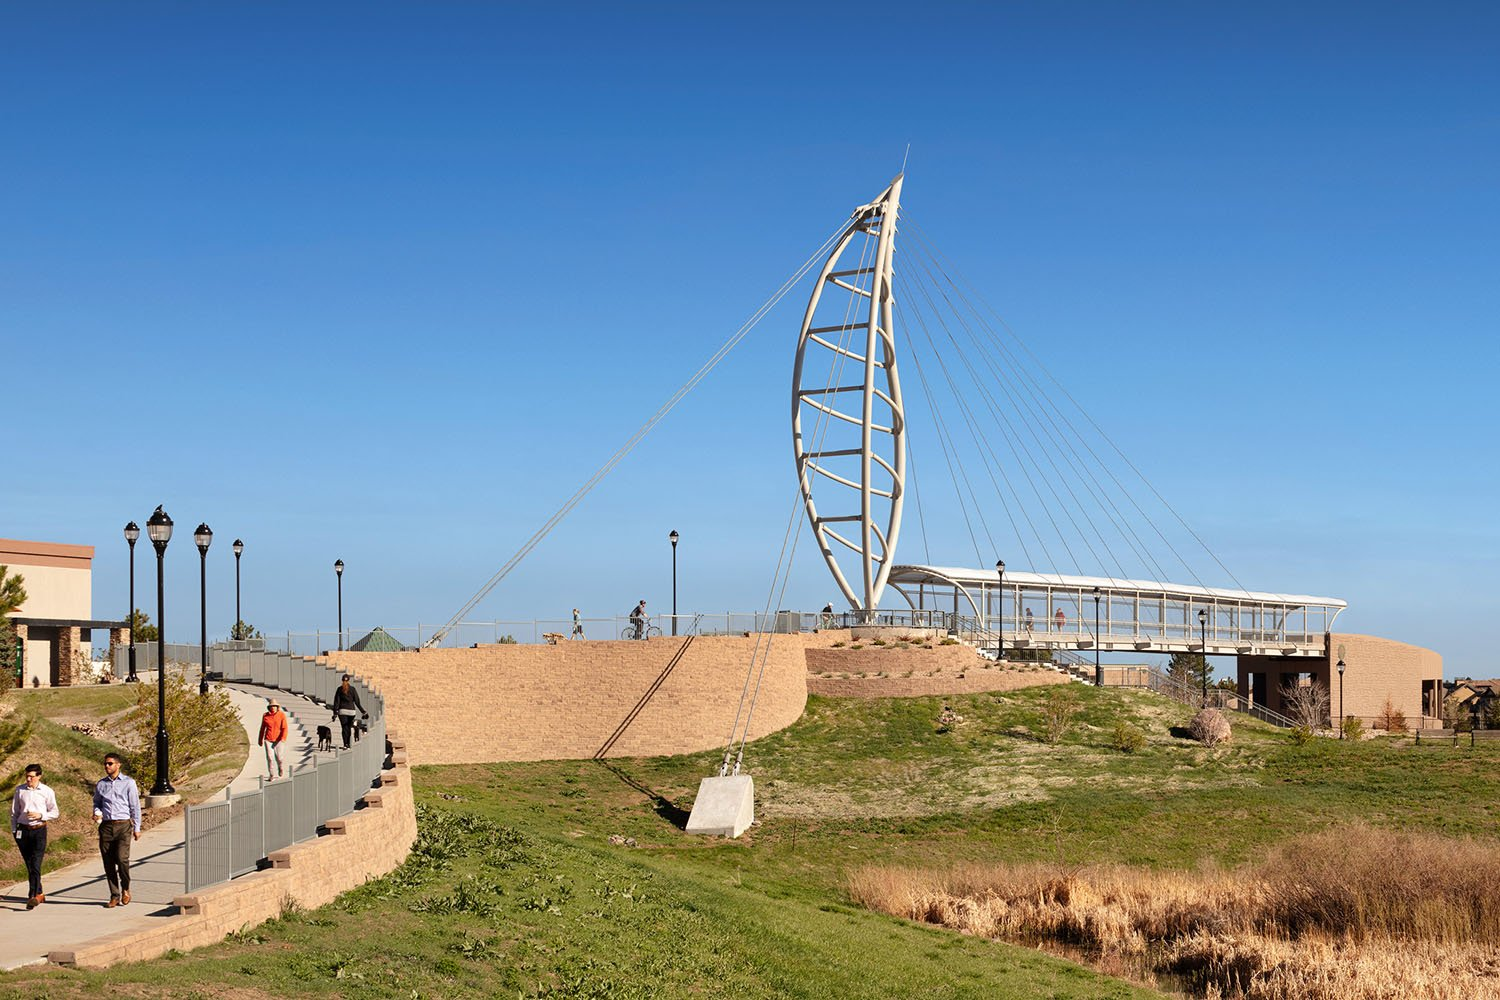 THE BRIDGE SPANS 52 METERS IN LENGTH, ALLOWING CITIZENS TO SAFELY ACCESS OPEN SPACE PARKLAND © Astula Inc/Raul Garcia